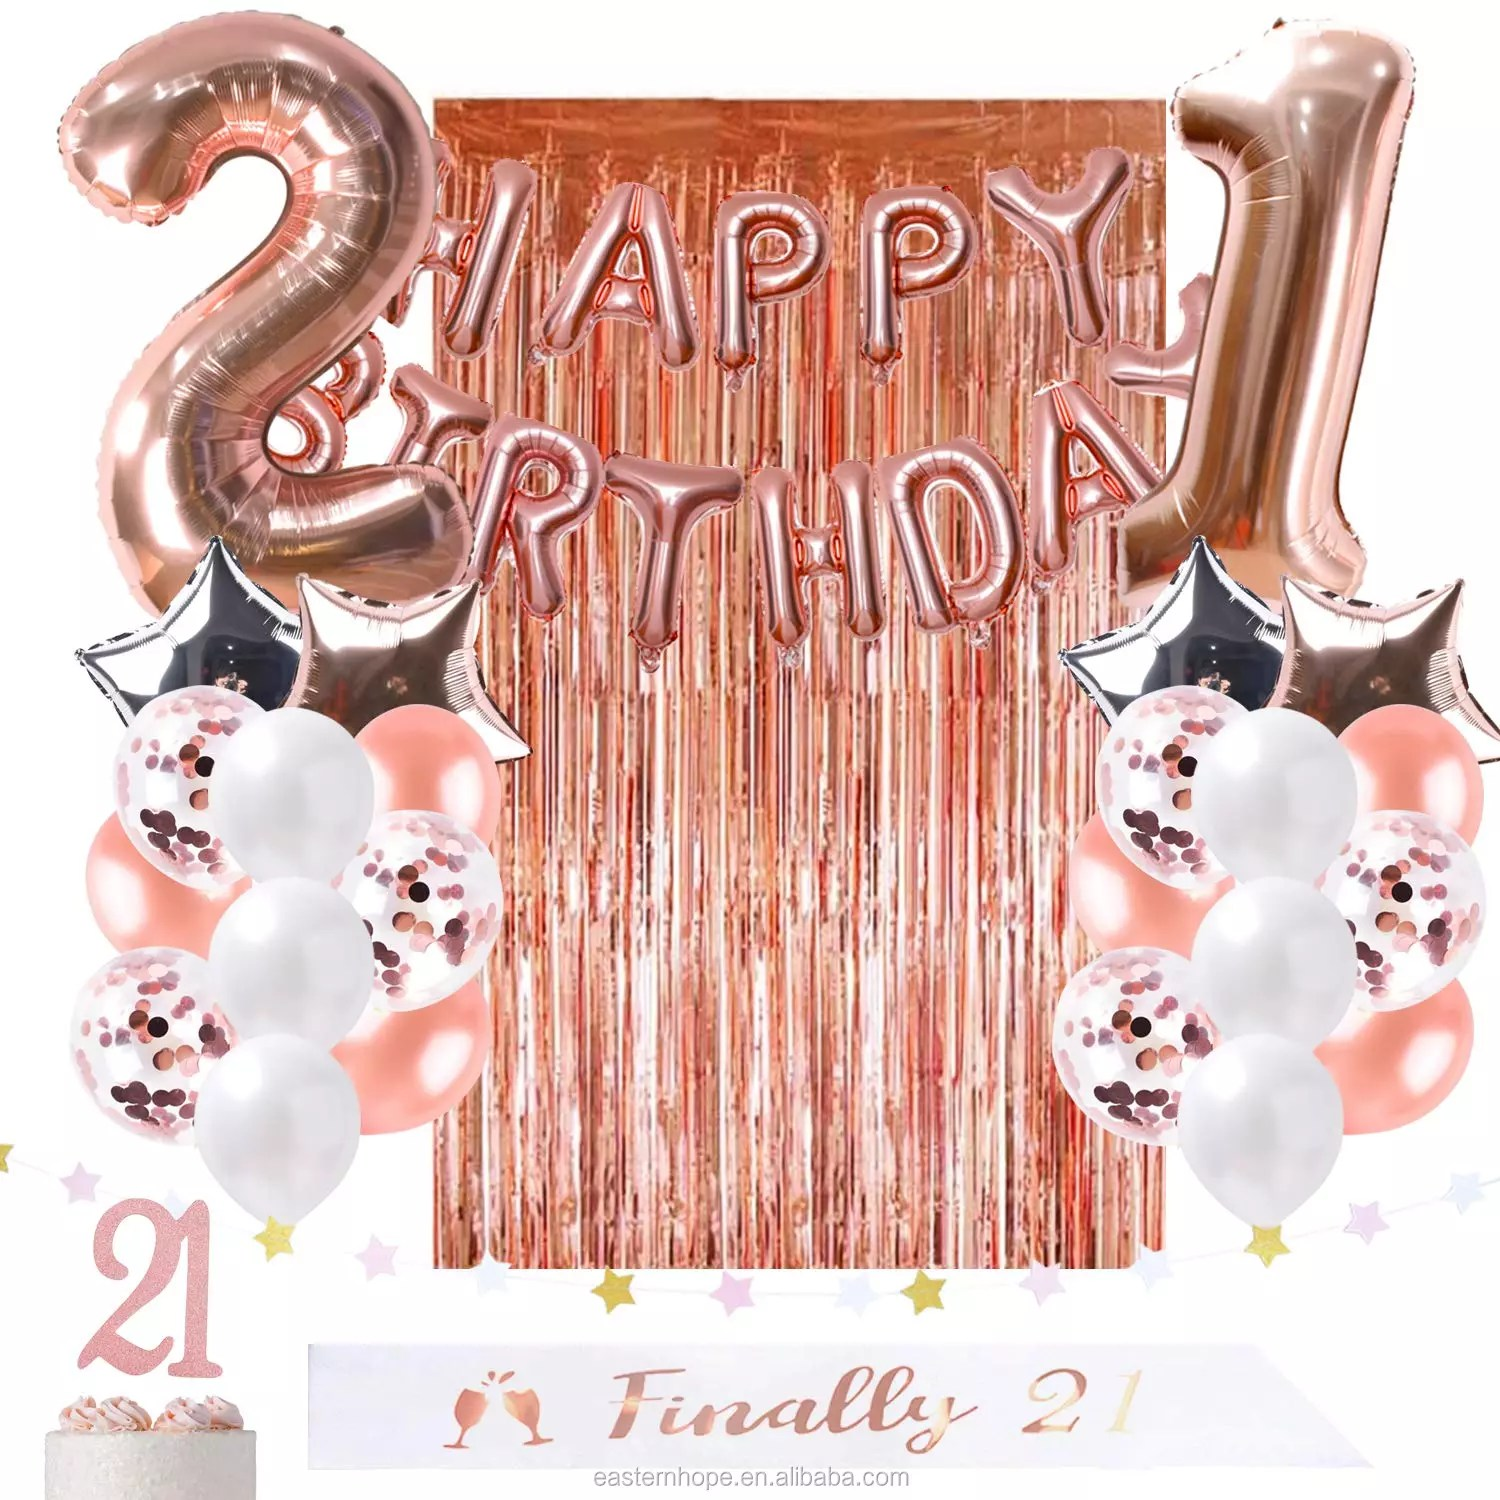 21st Birthday Decorations Rose Gold Party Supplies Finally Legal 21 Sash Foil Balloon Curtain Backdrop Props Or Photos 21st Bday Buy Birthday Decorations Rose Gold Rose Gold Curtain Balloons Birthday Party Product On